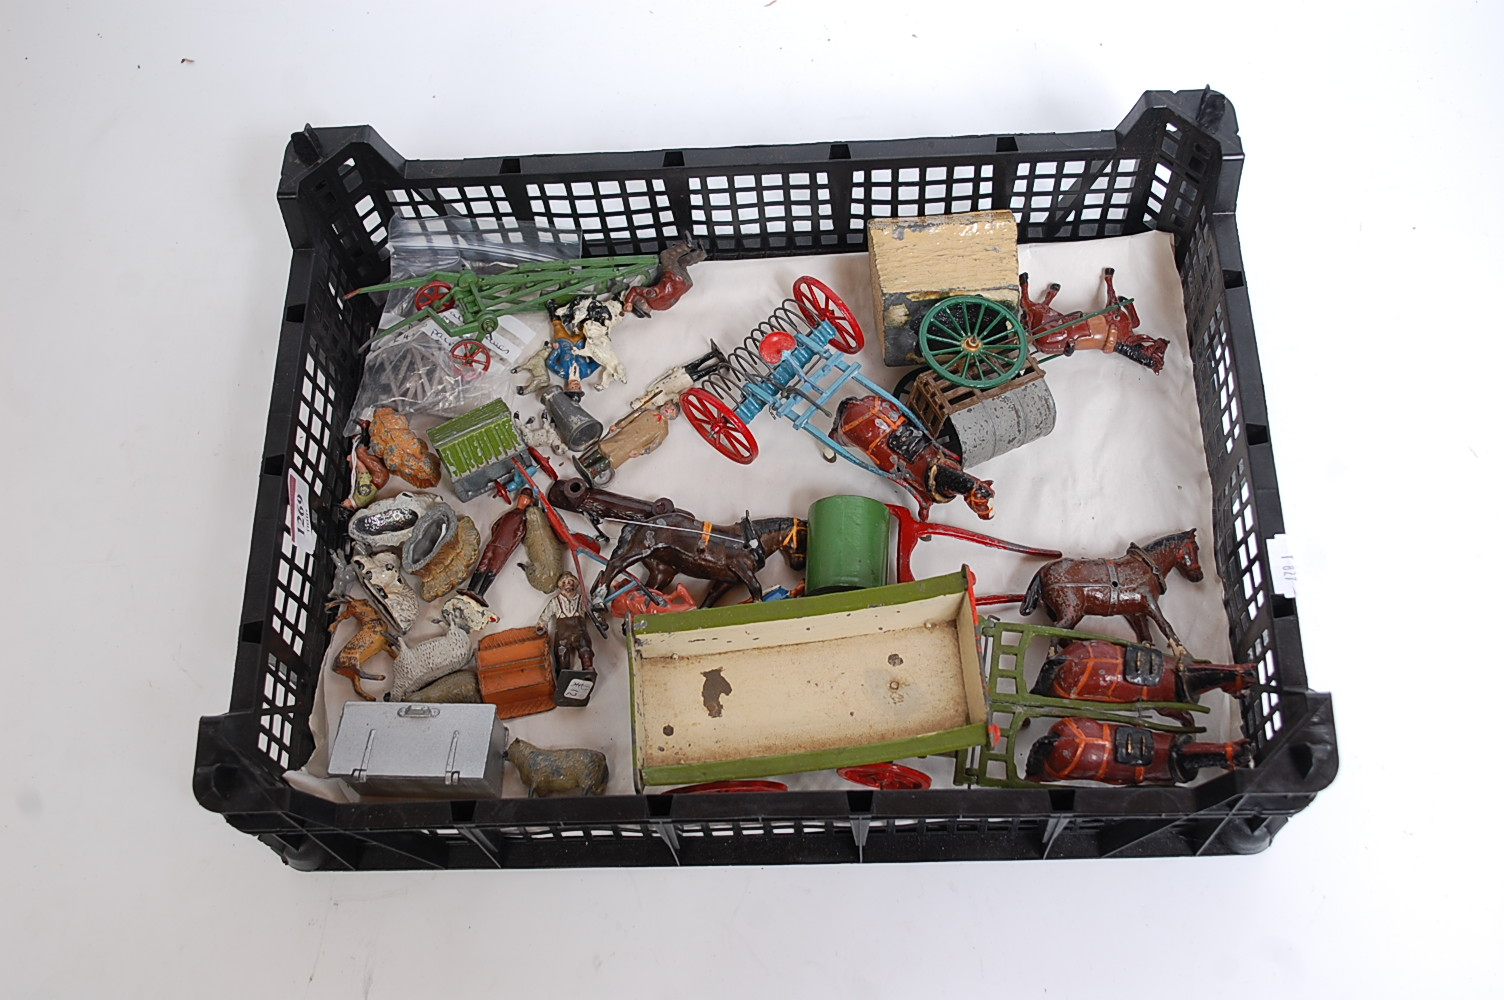 One tray containing approx. 50 various Britains and other lead hollow cast farming and civilian